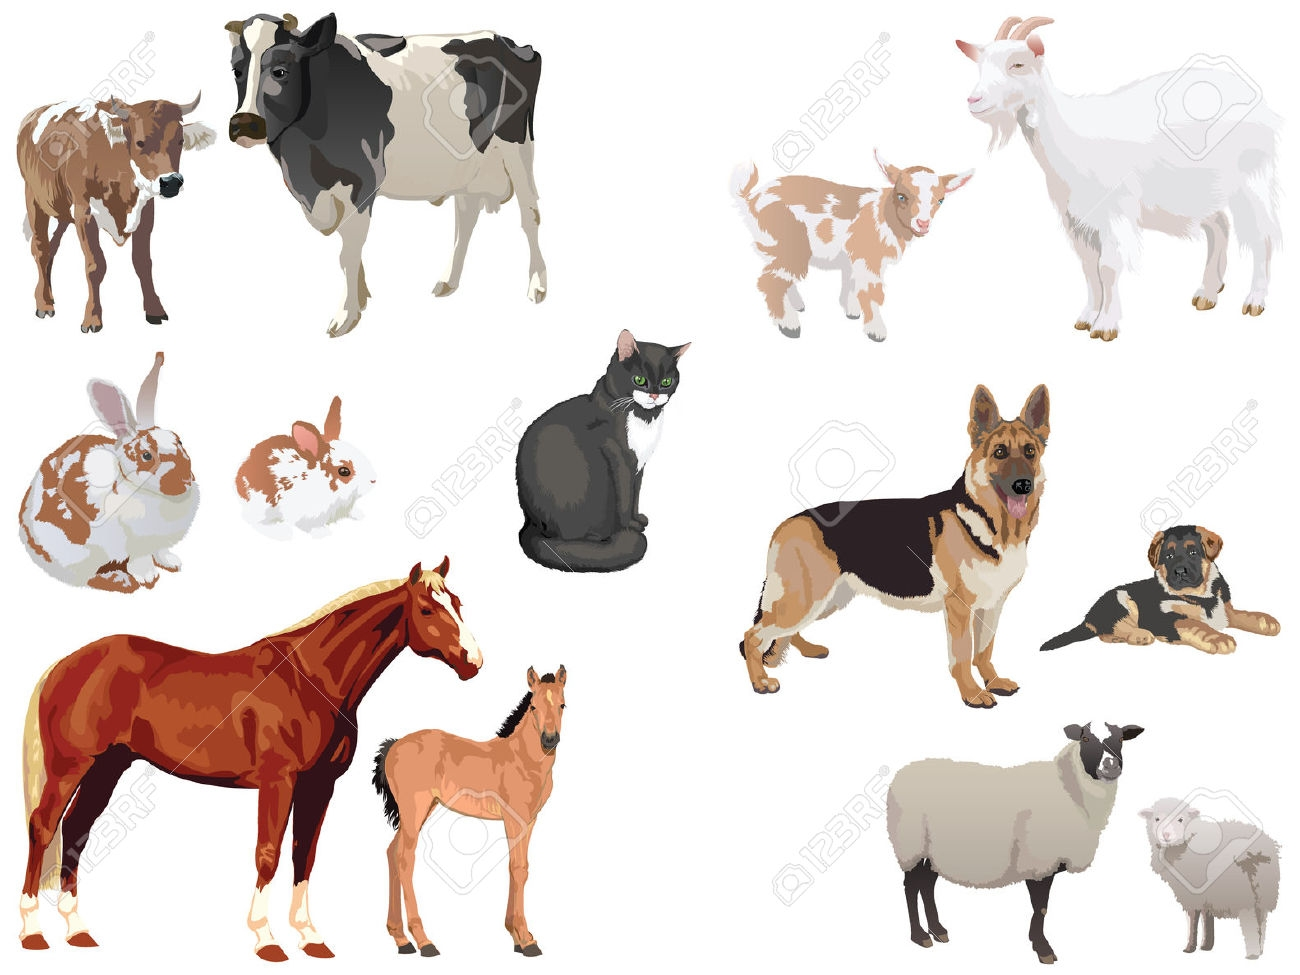 Animals live in land clipart 10 » Clipart Station.